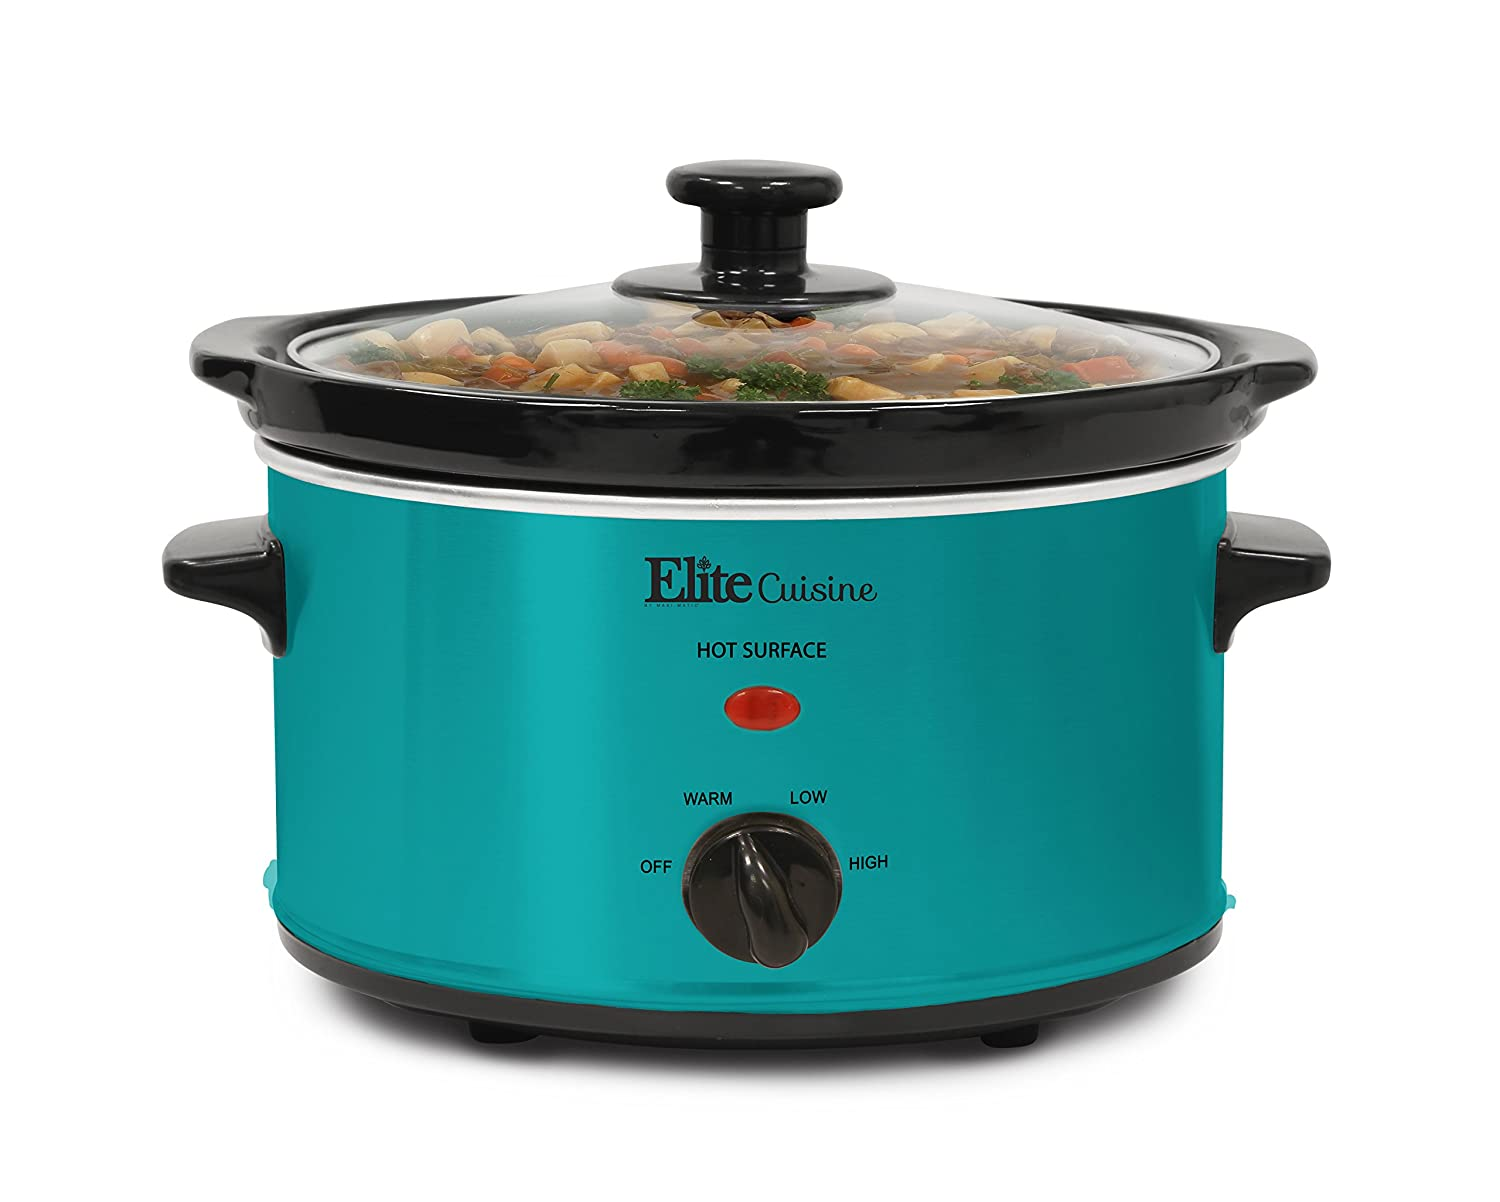 Elite Cuisine MST-275XT Electric Slow Cooker, Adjustable Temp, Entrees, Sauces, Stews and Dips, Dishwasher-Safe Glass Lid & Ceramic Pot, 2Qt Capacity, Teal